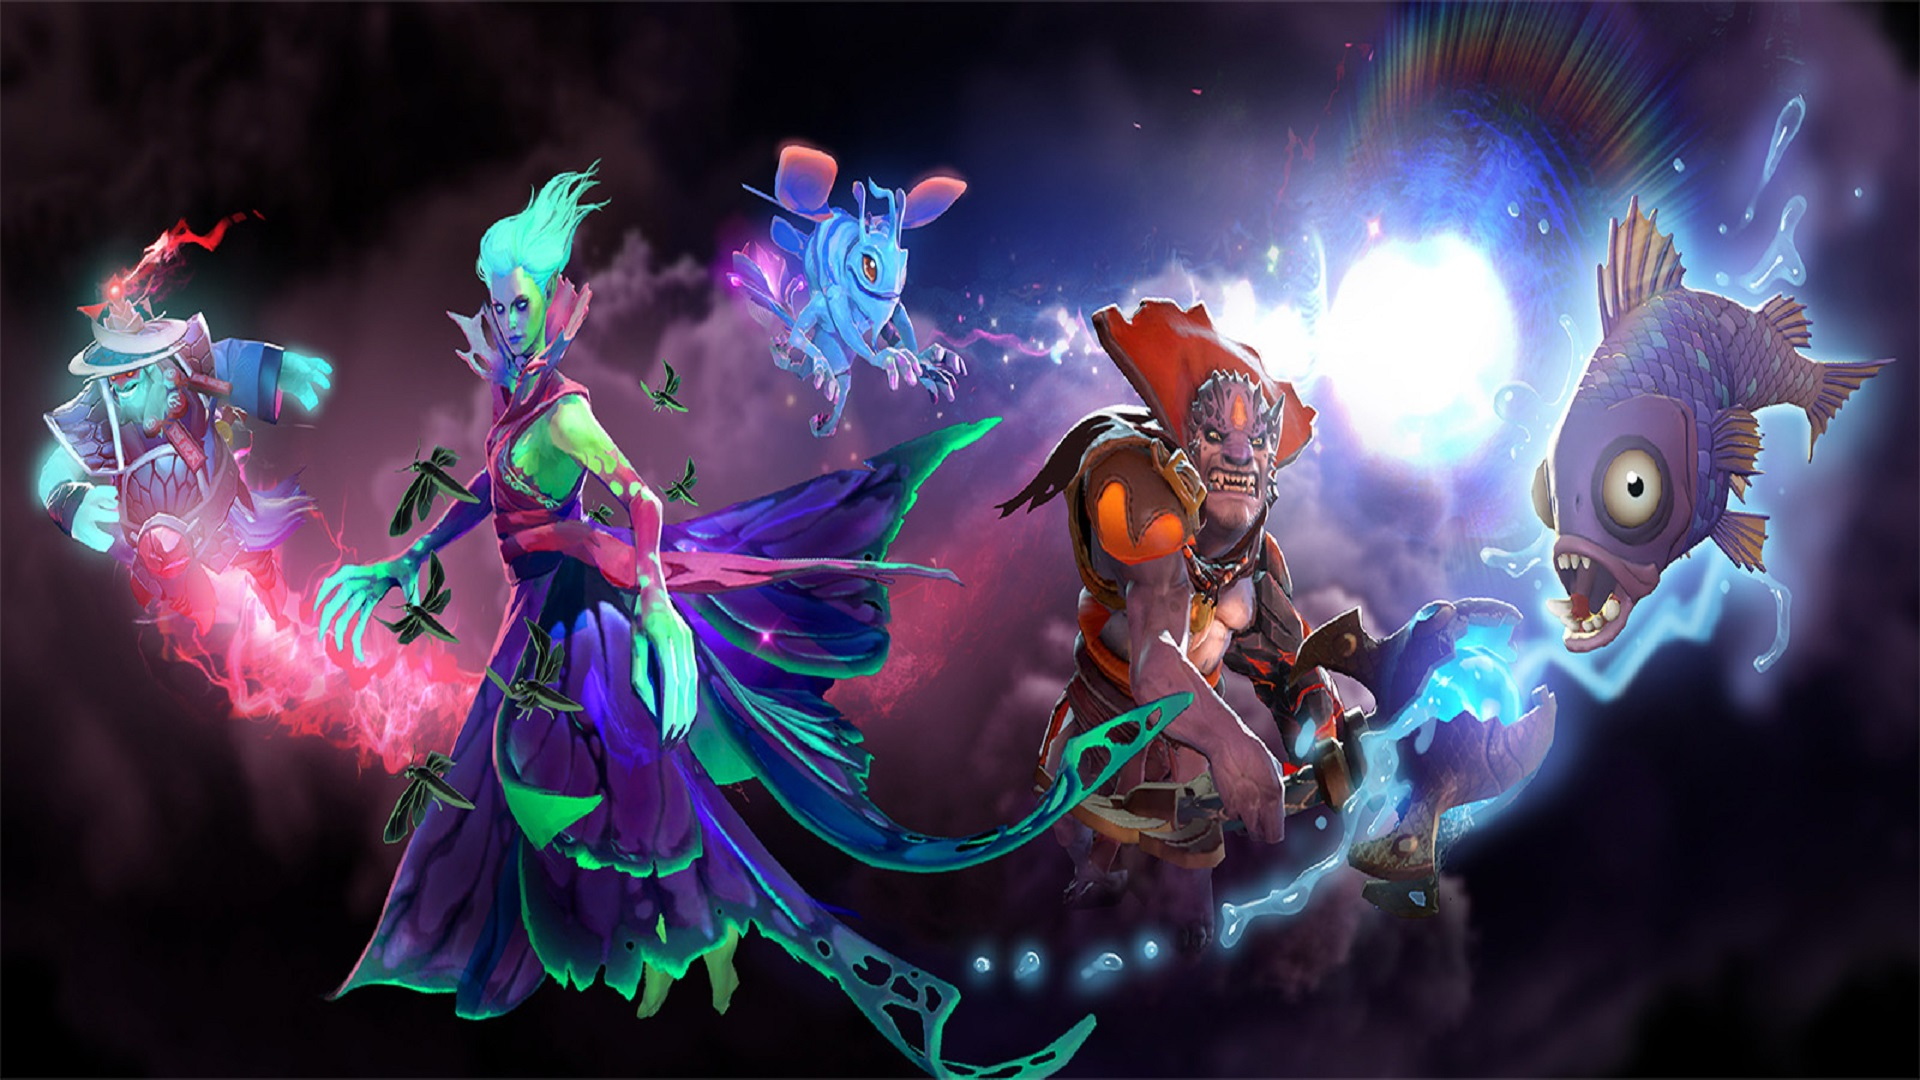 Immortal Dota 2 Items Wallpapers The Play Dota 2